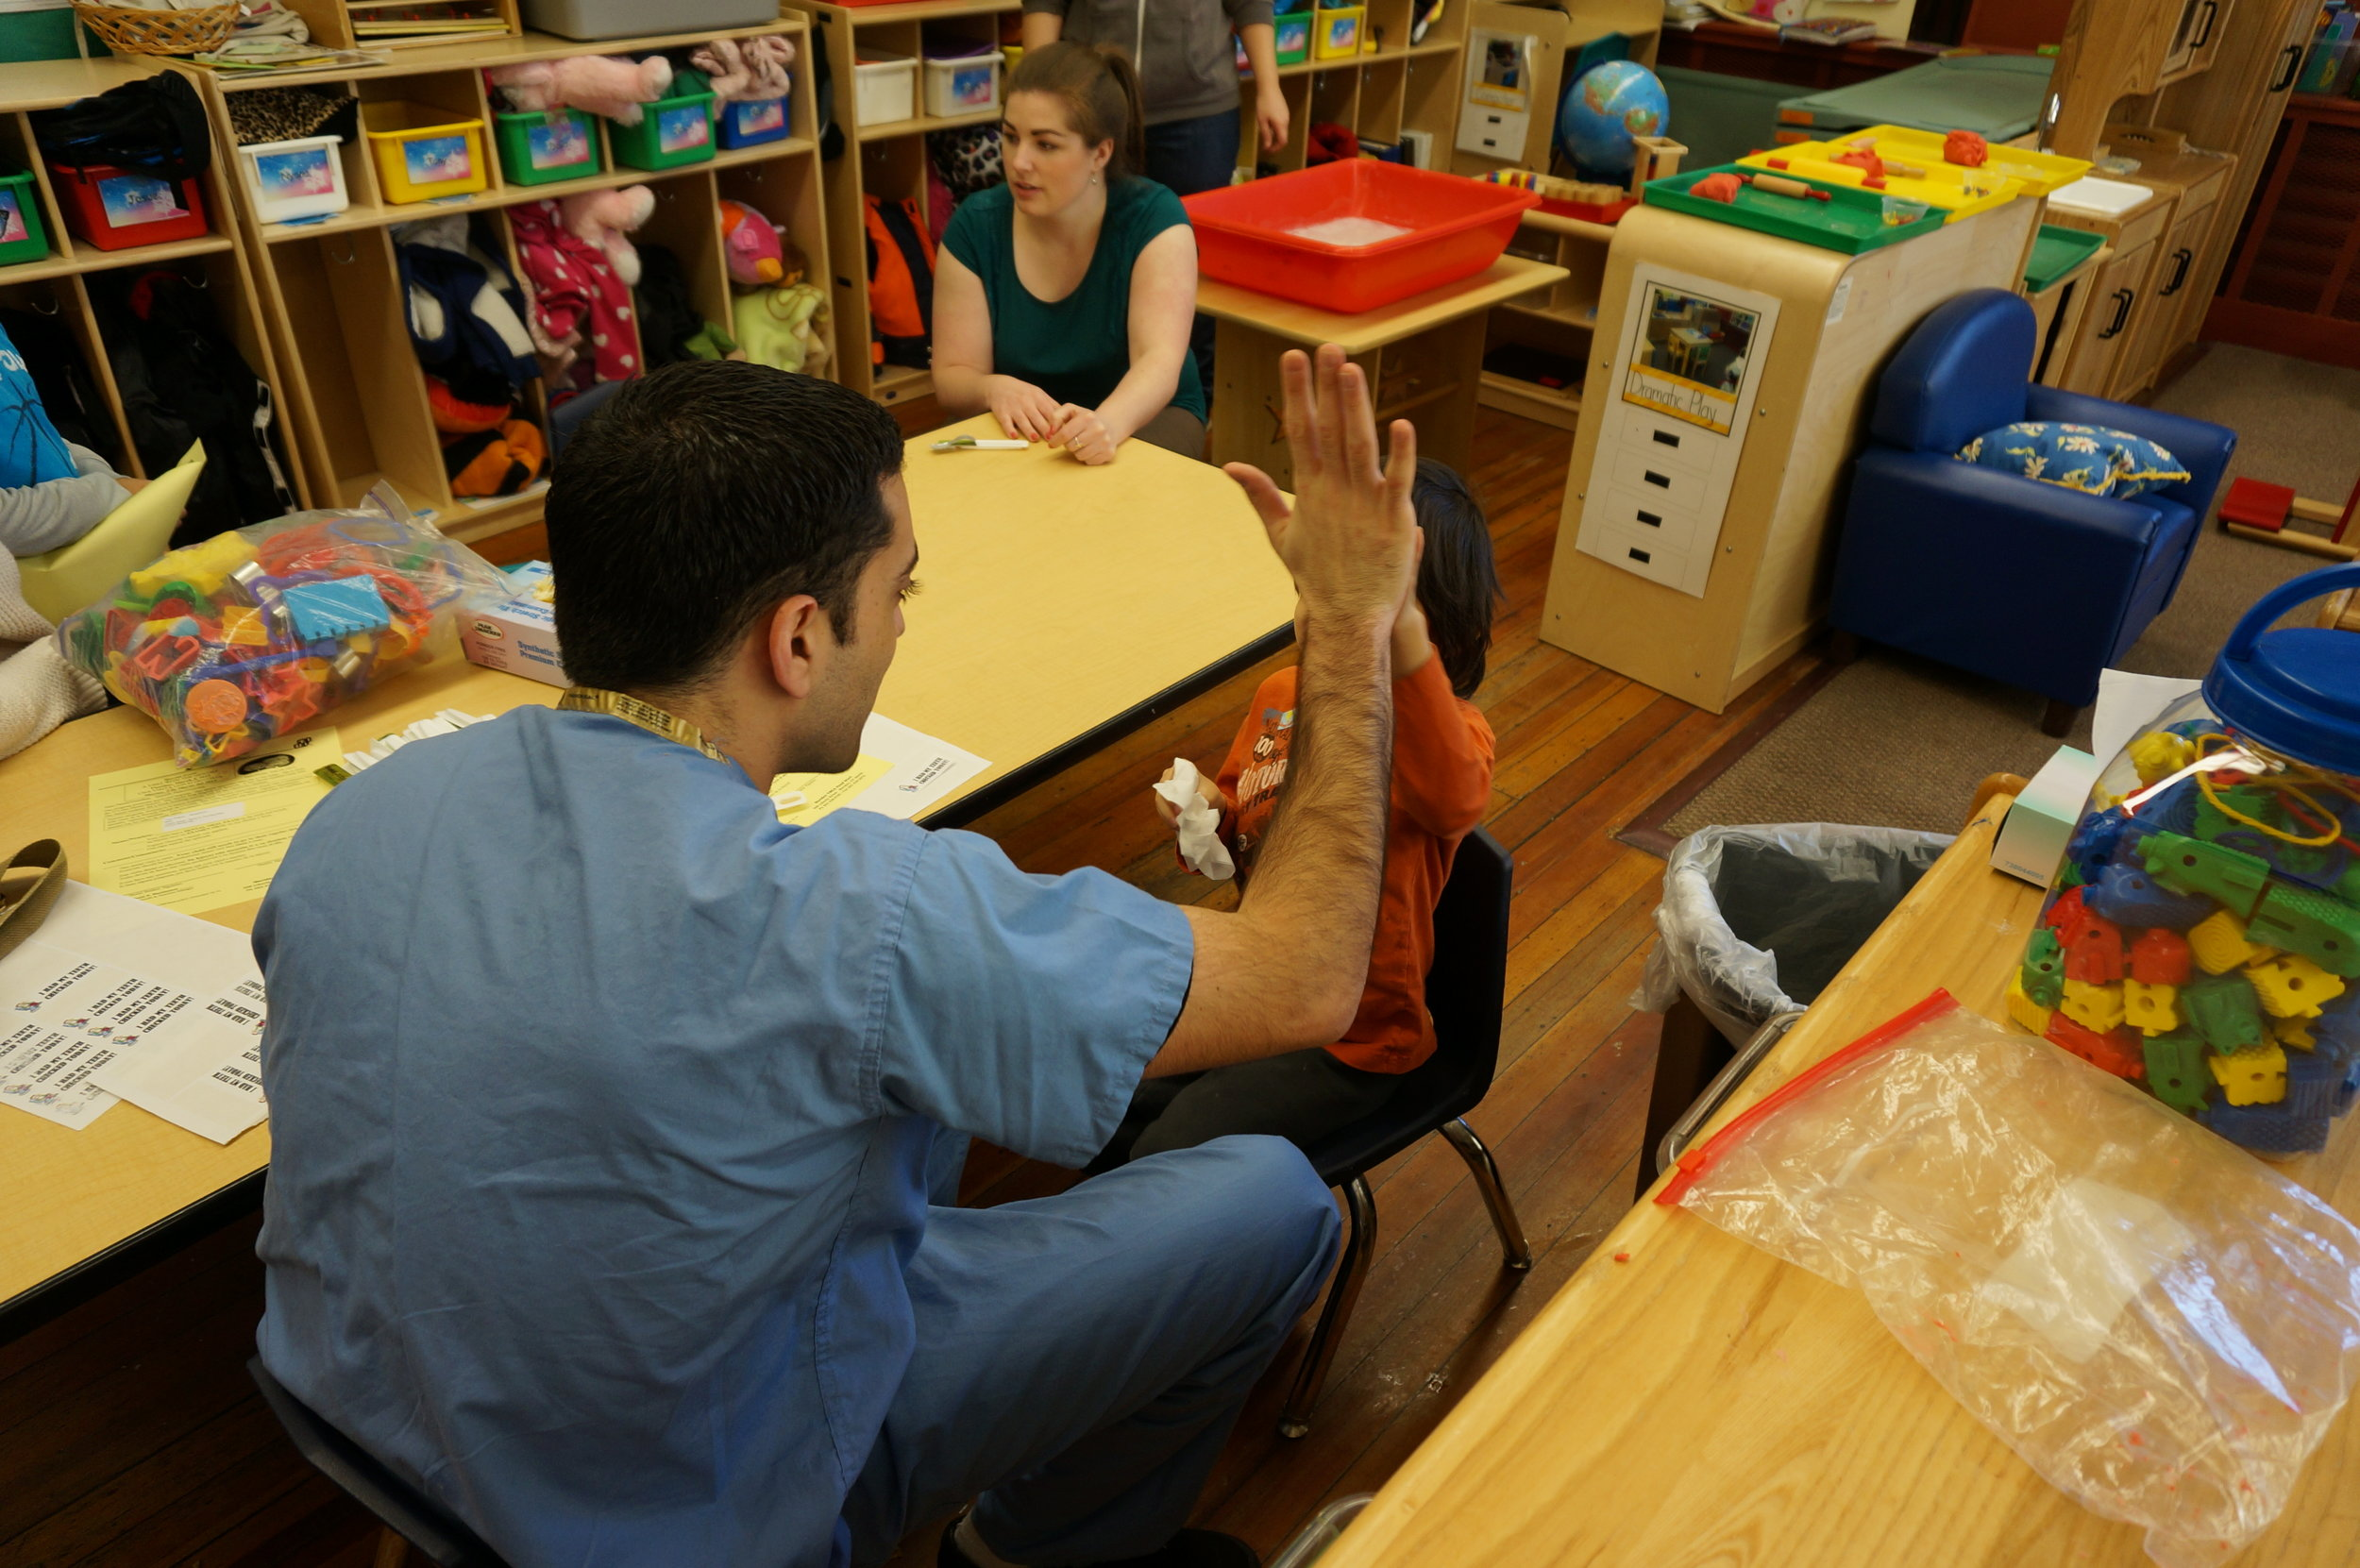 Fluoride varnish & high fives as part of an outreach program where Uconn Dental students visited head start programs to provide preventative dentistry & free oral screenings - March 2015